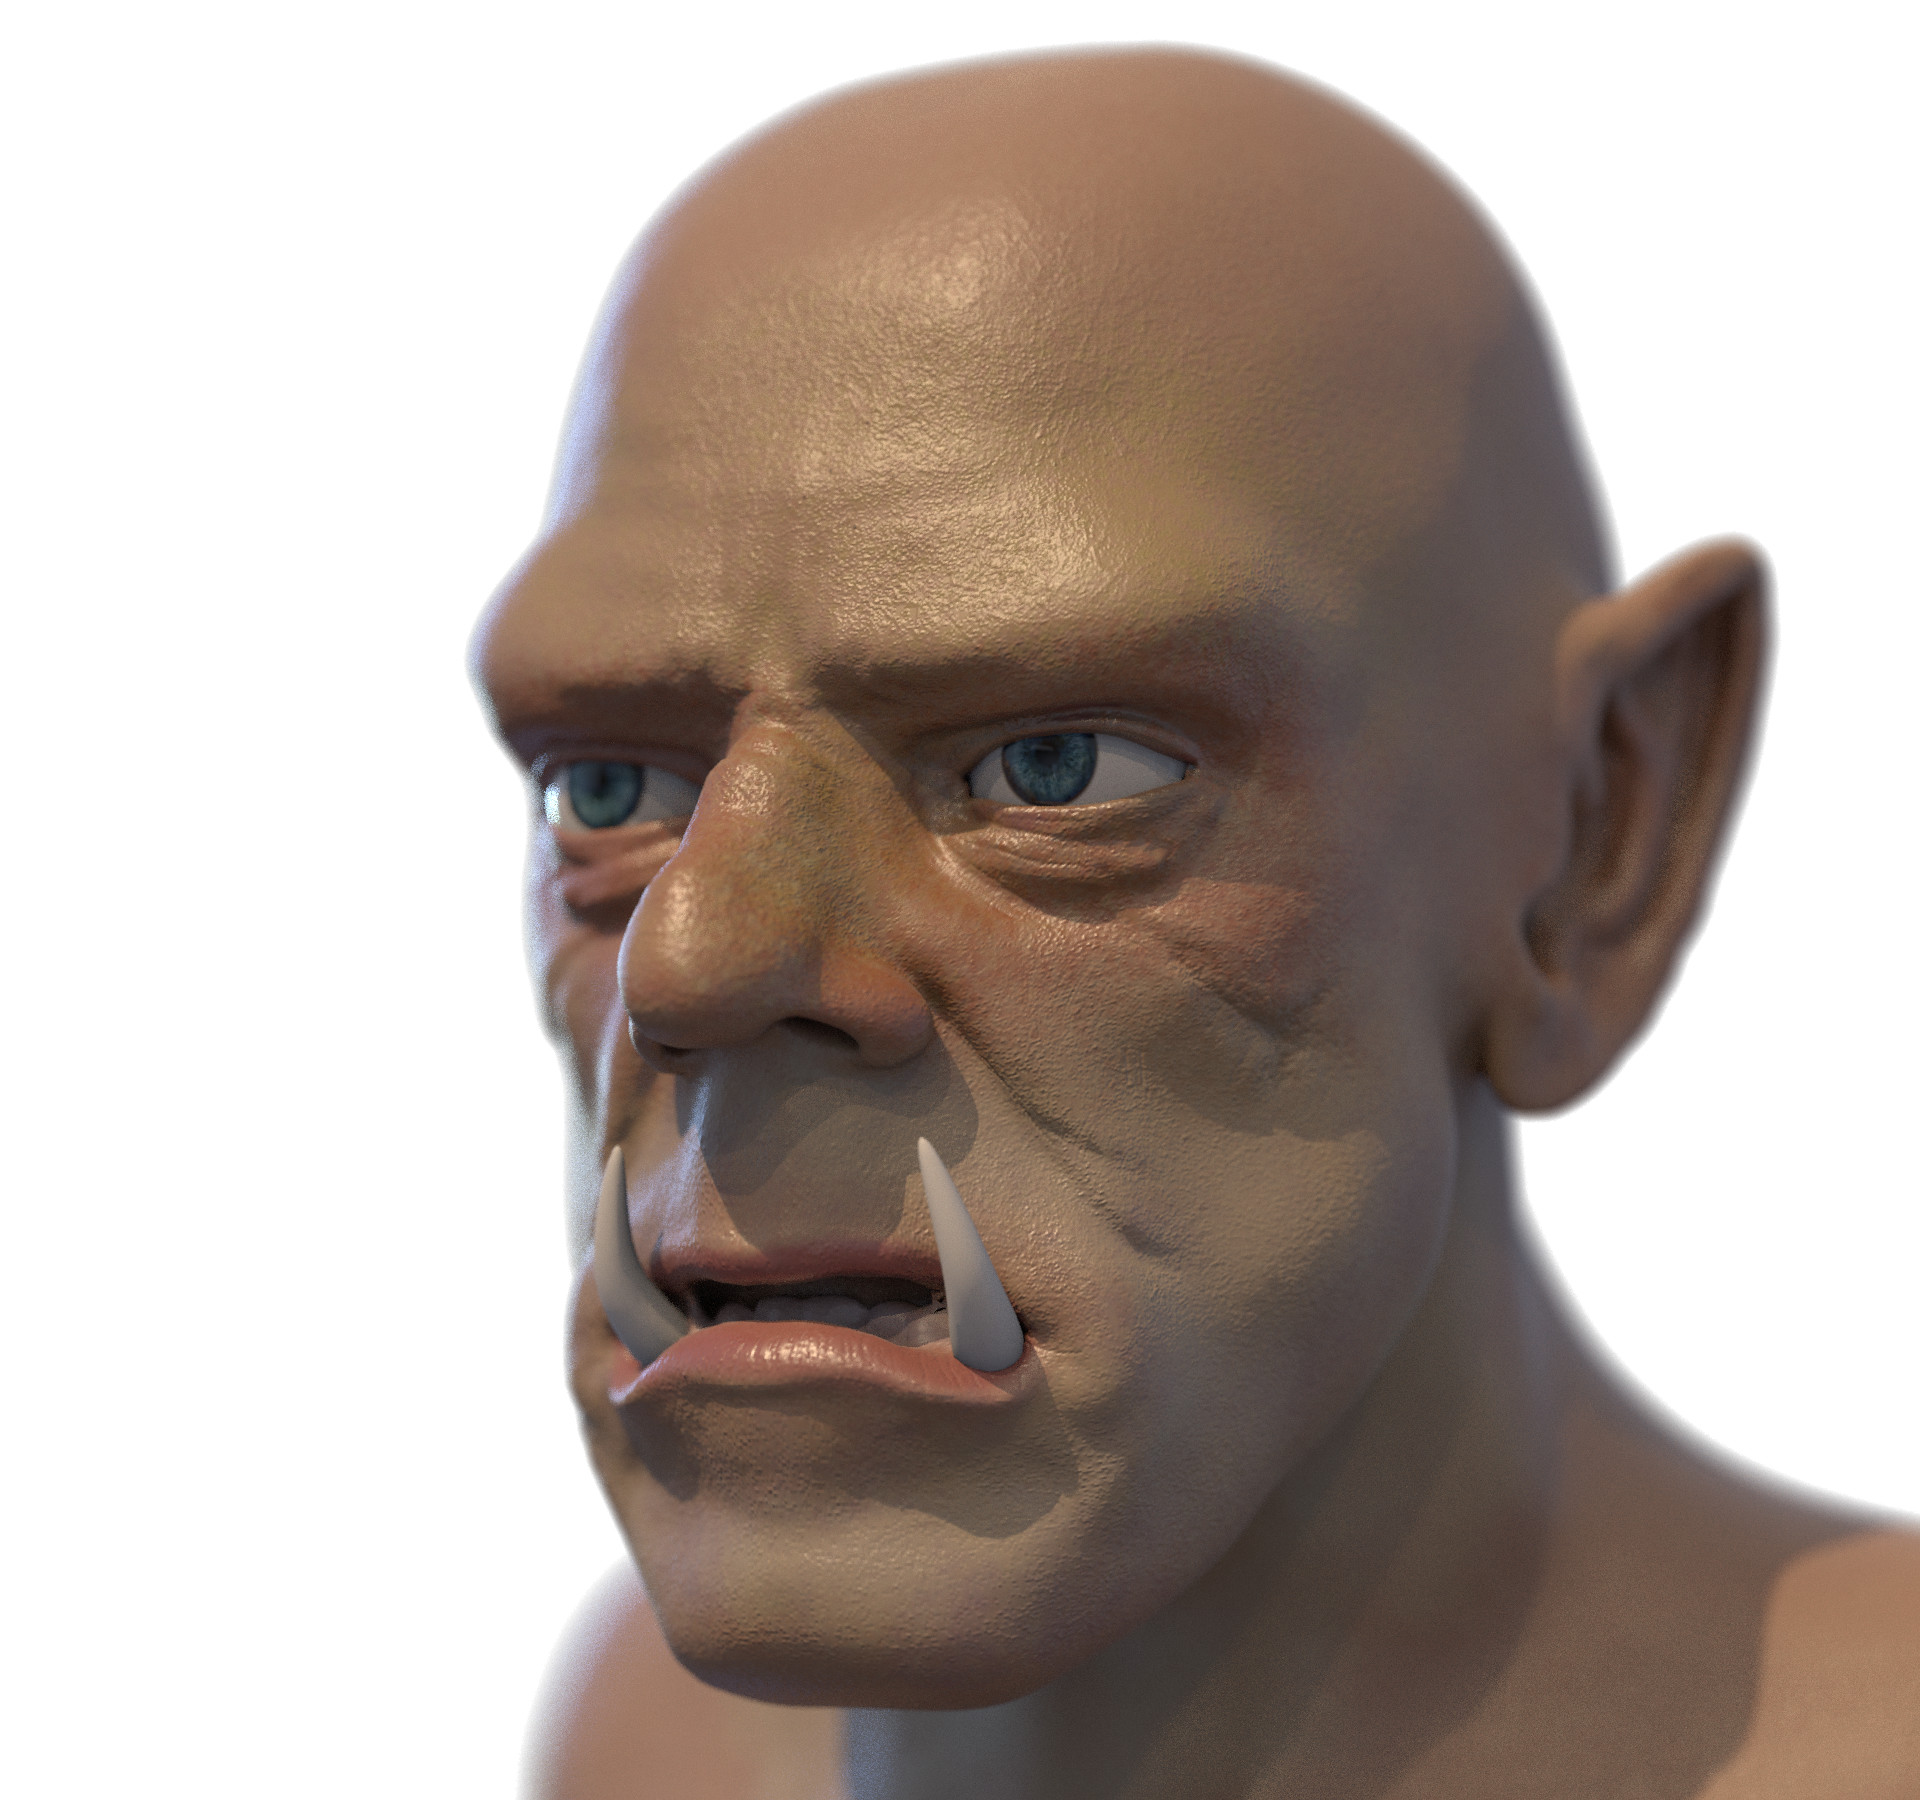 Barry mccarthy beast orc blender